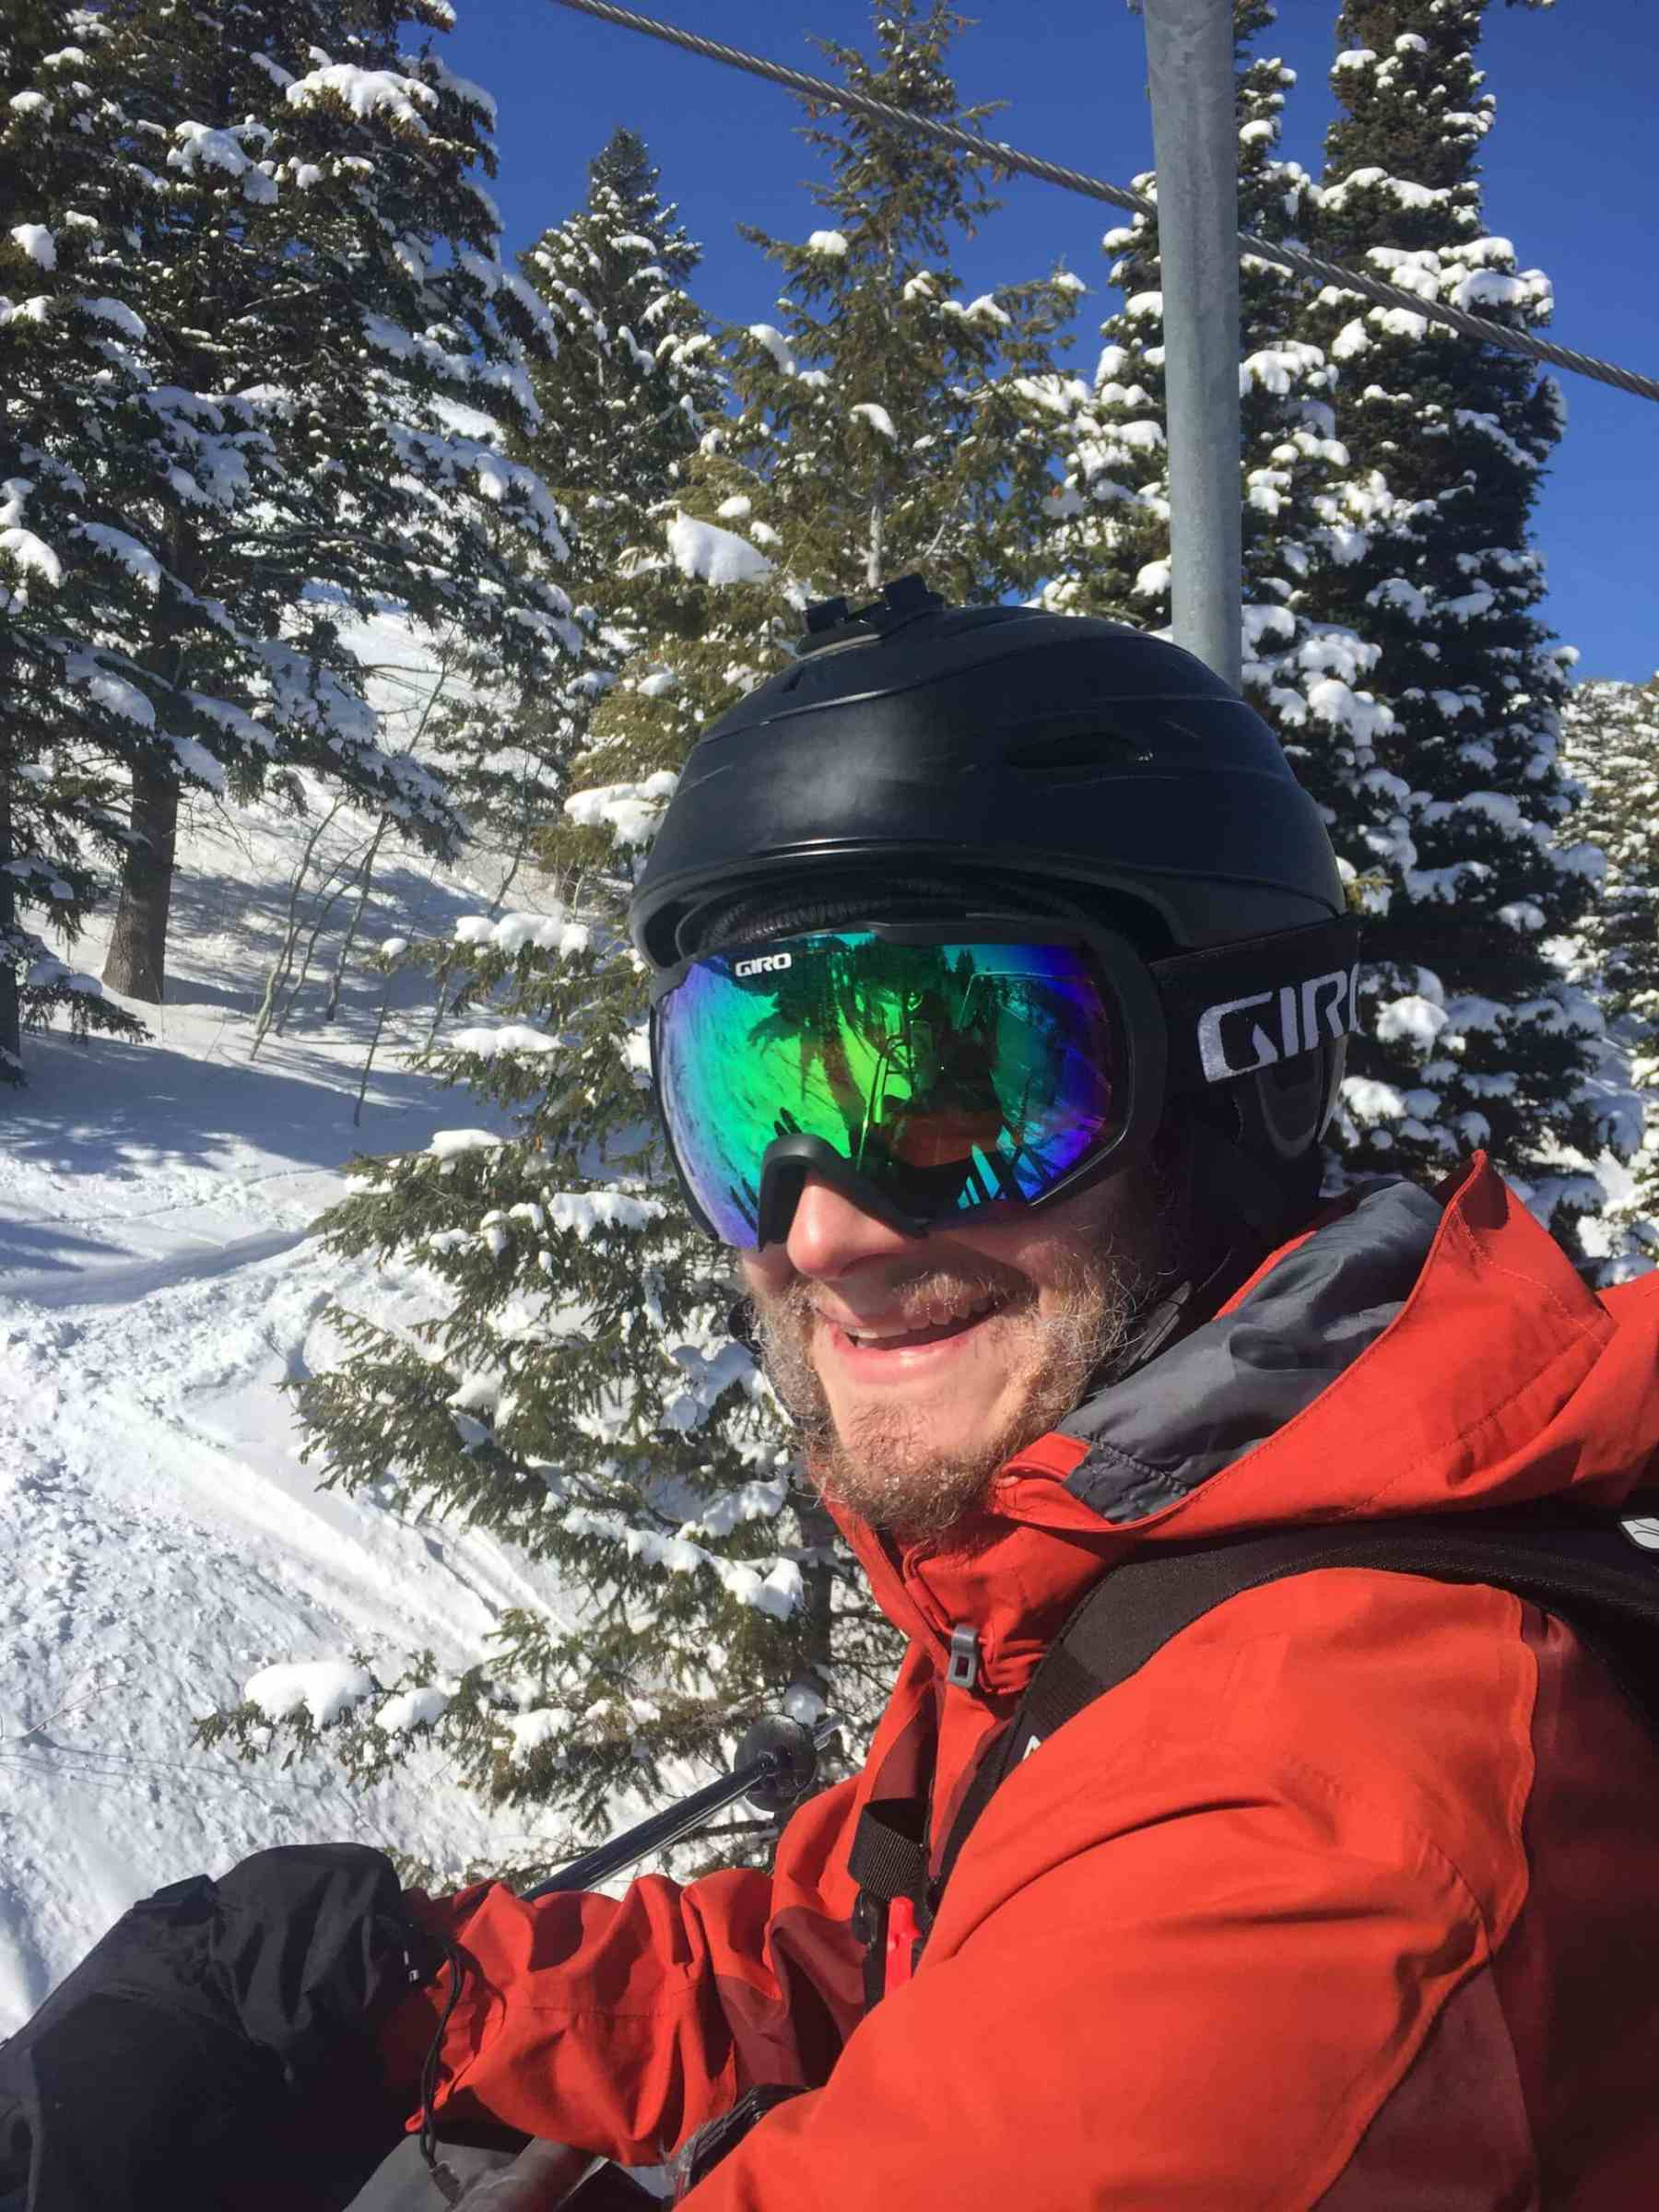 Powder Mountain has been on Keith's bucket list!